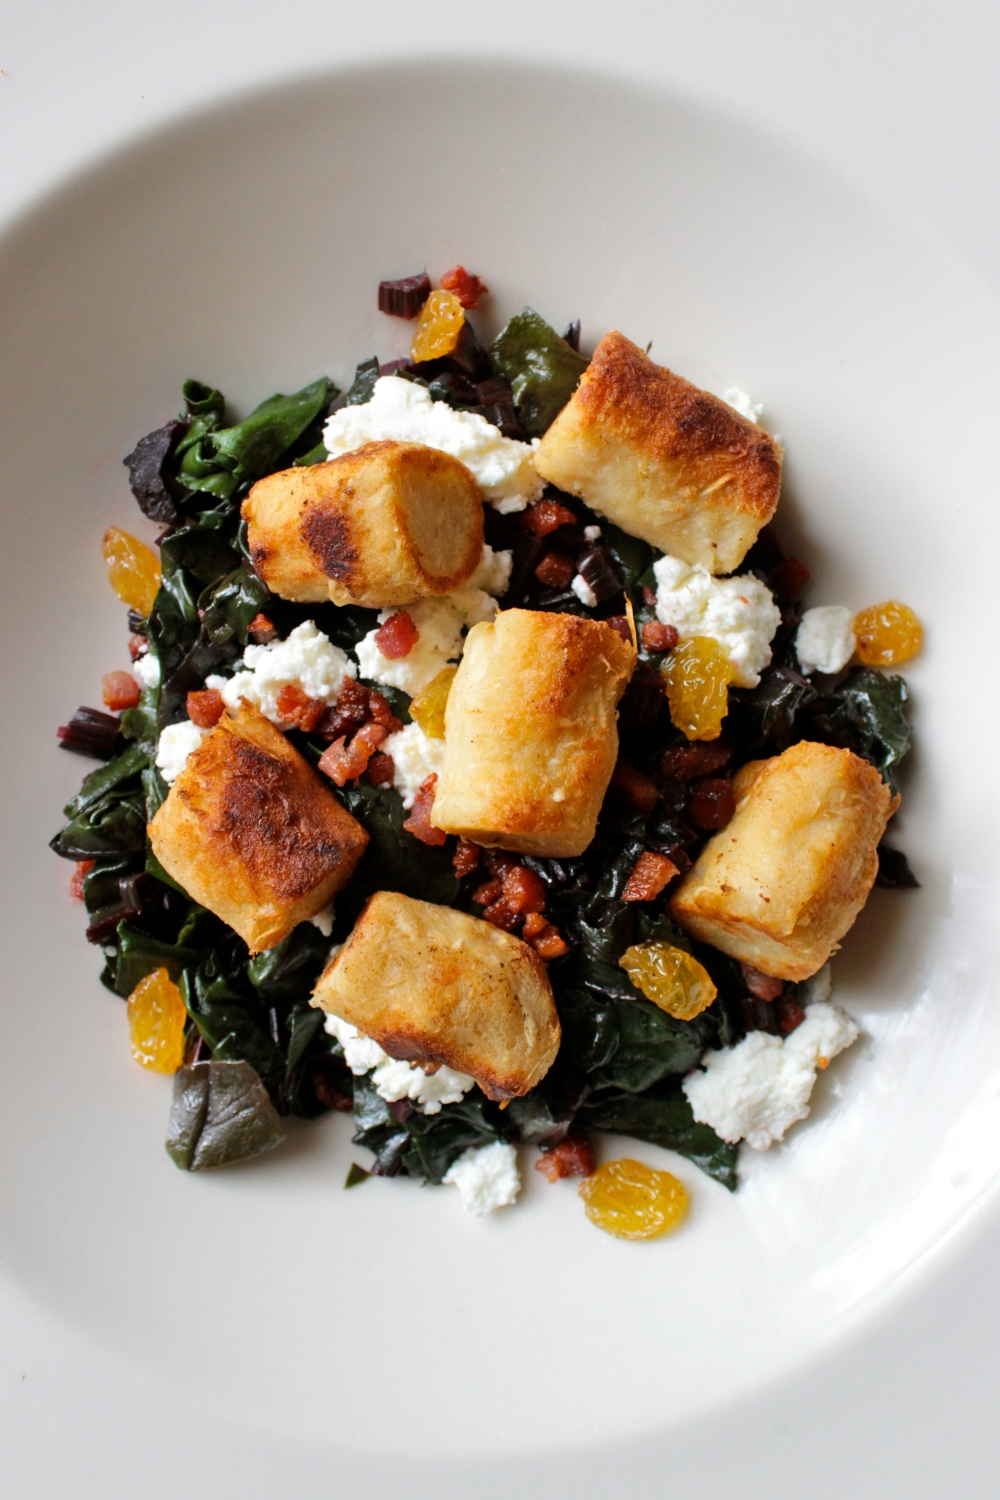 Crispy Horseradish Gnocchi with Beet Greens, Goat Cheese and Pancetta